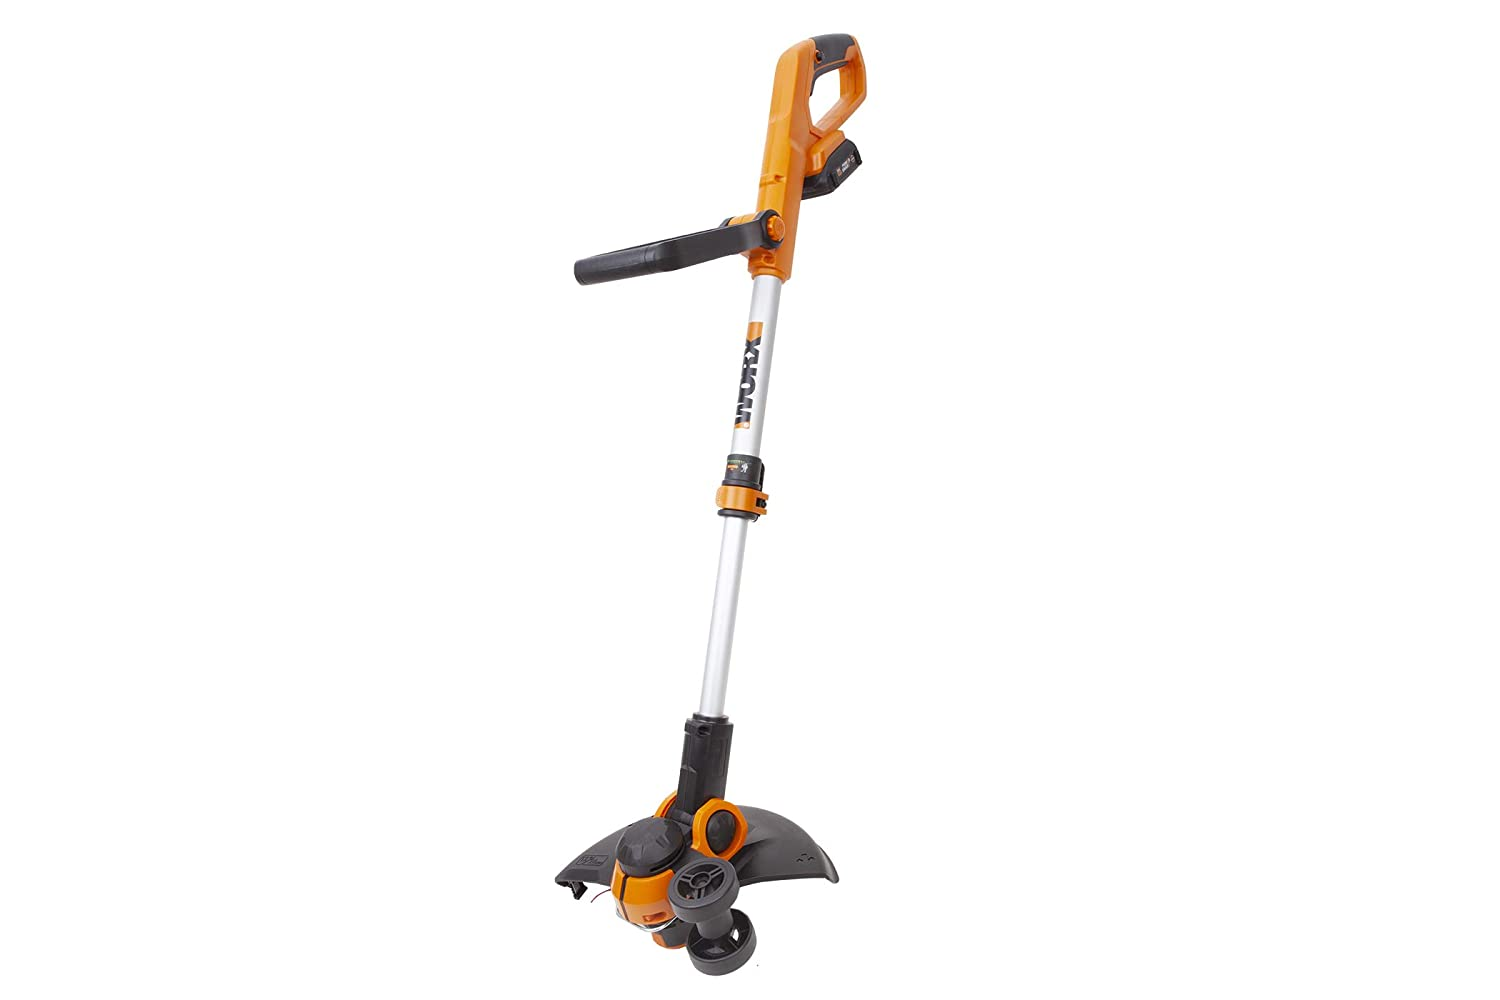 """Worx WG162 20V 10""""Cordless String Trimmer/Edger, Battery and Charger included"""